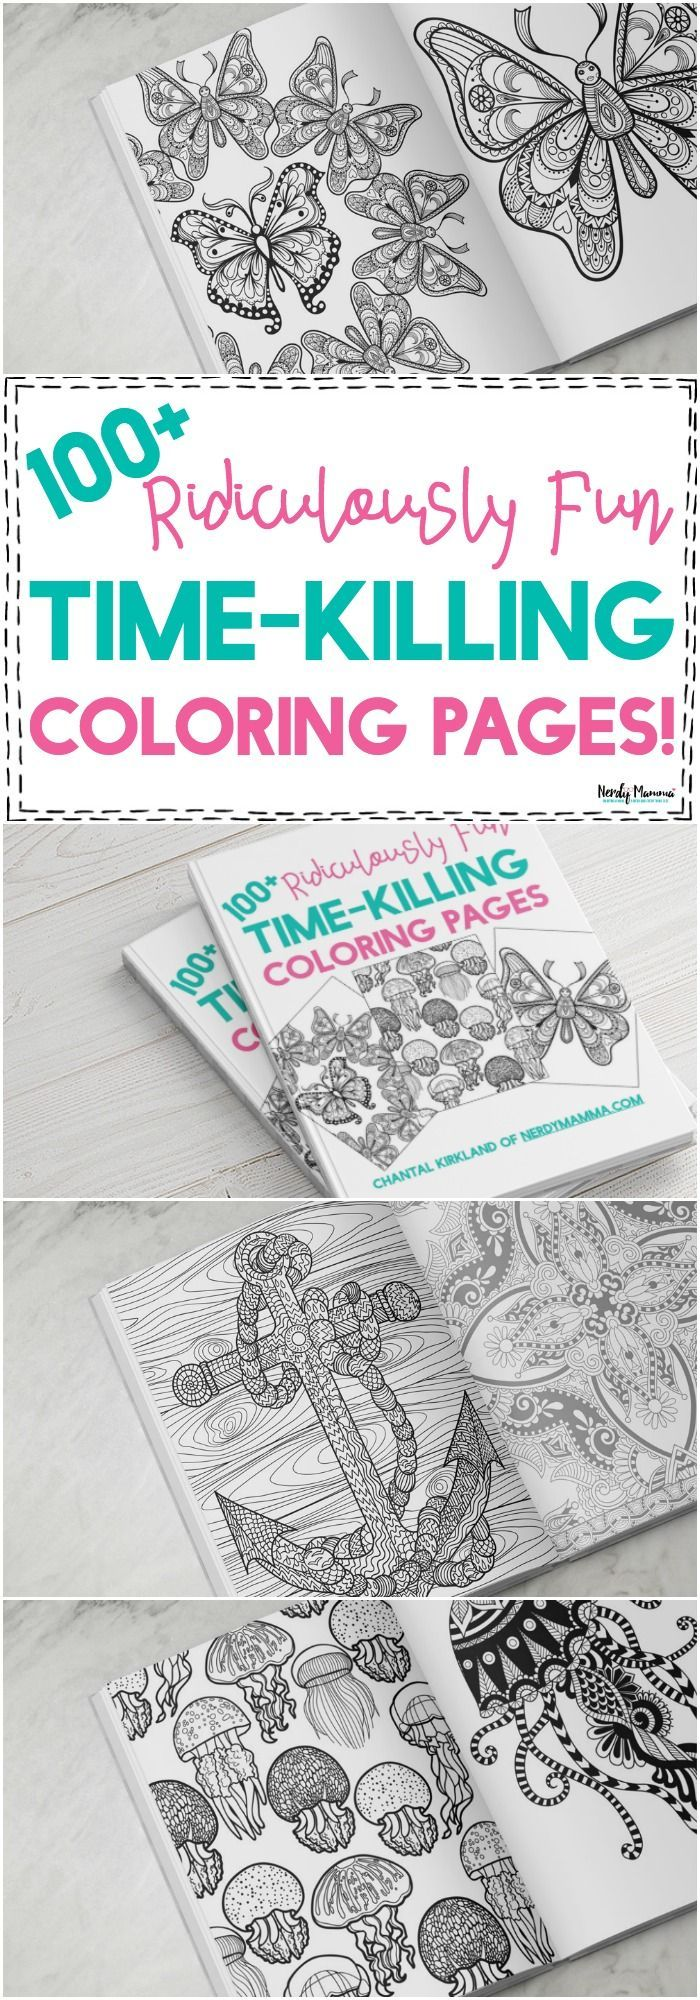 Coloring pages 365 - 100 Ridiculously Fun Time Killing Coloring Pages